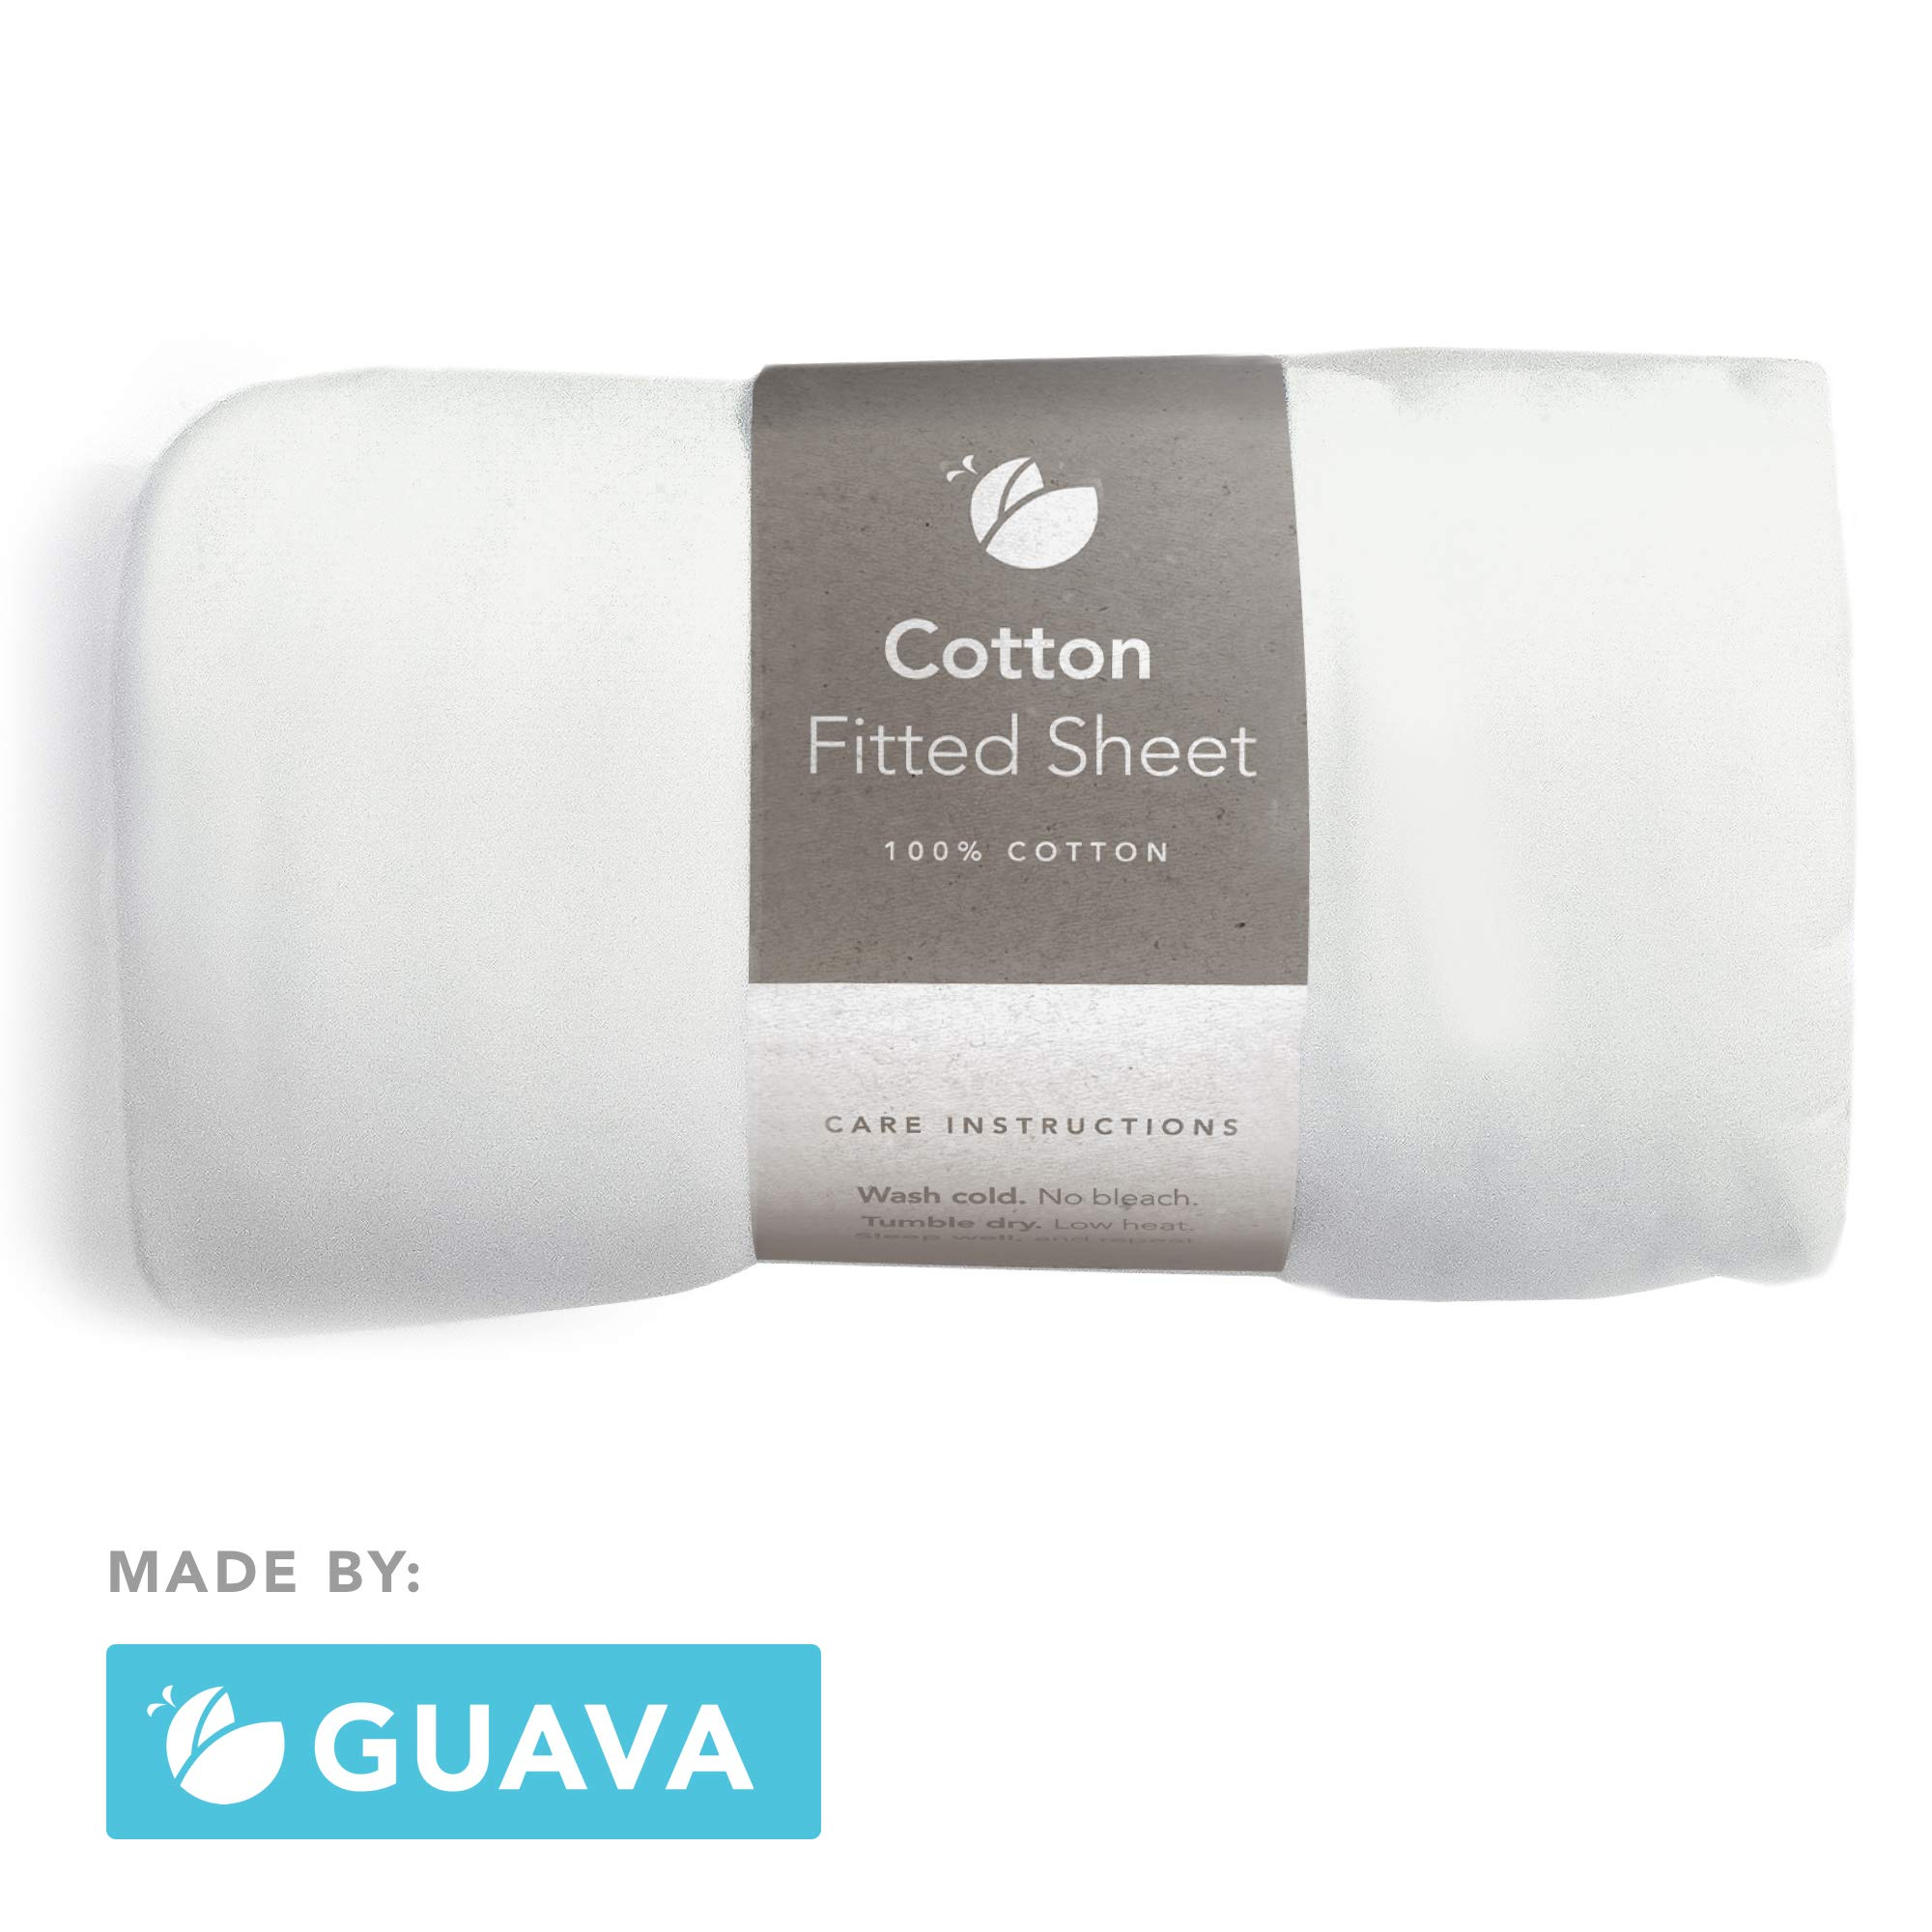 GUAVA FAMILY - Lotus Crib 100% Cotton Fitted Sheet | Perfect, Manufacturer-Approved Fit, Soft & Safe for Infants, Baby and Toddlers, Unisex, Boys & Girls - Fits Both Velcro & Buckle Versions (White) by Guava Family